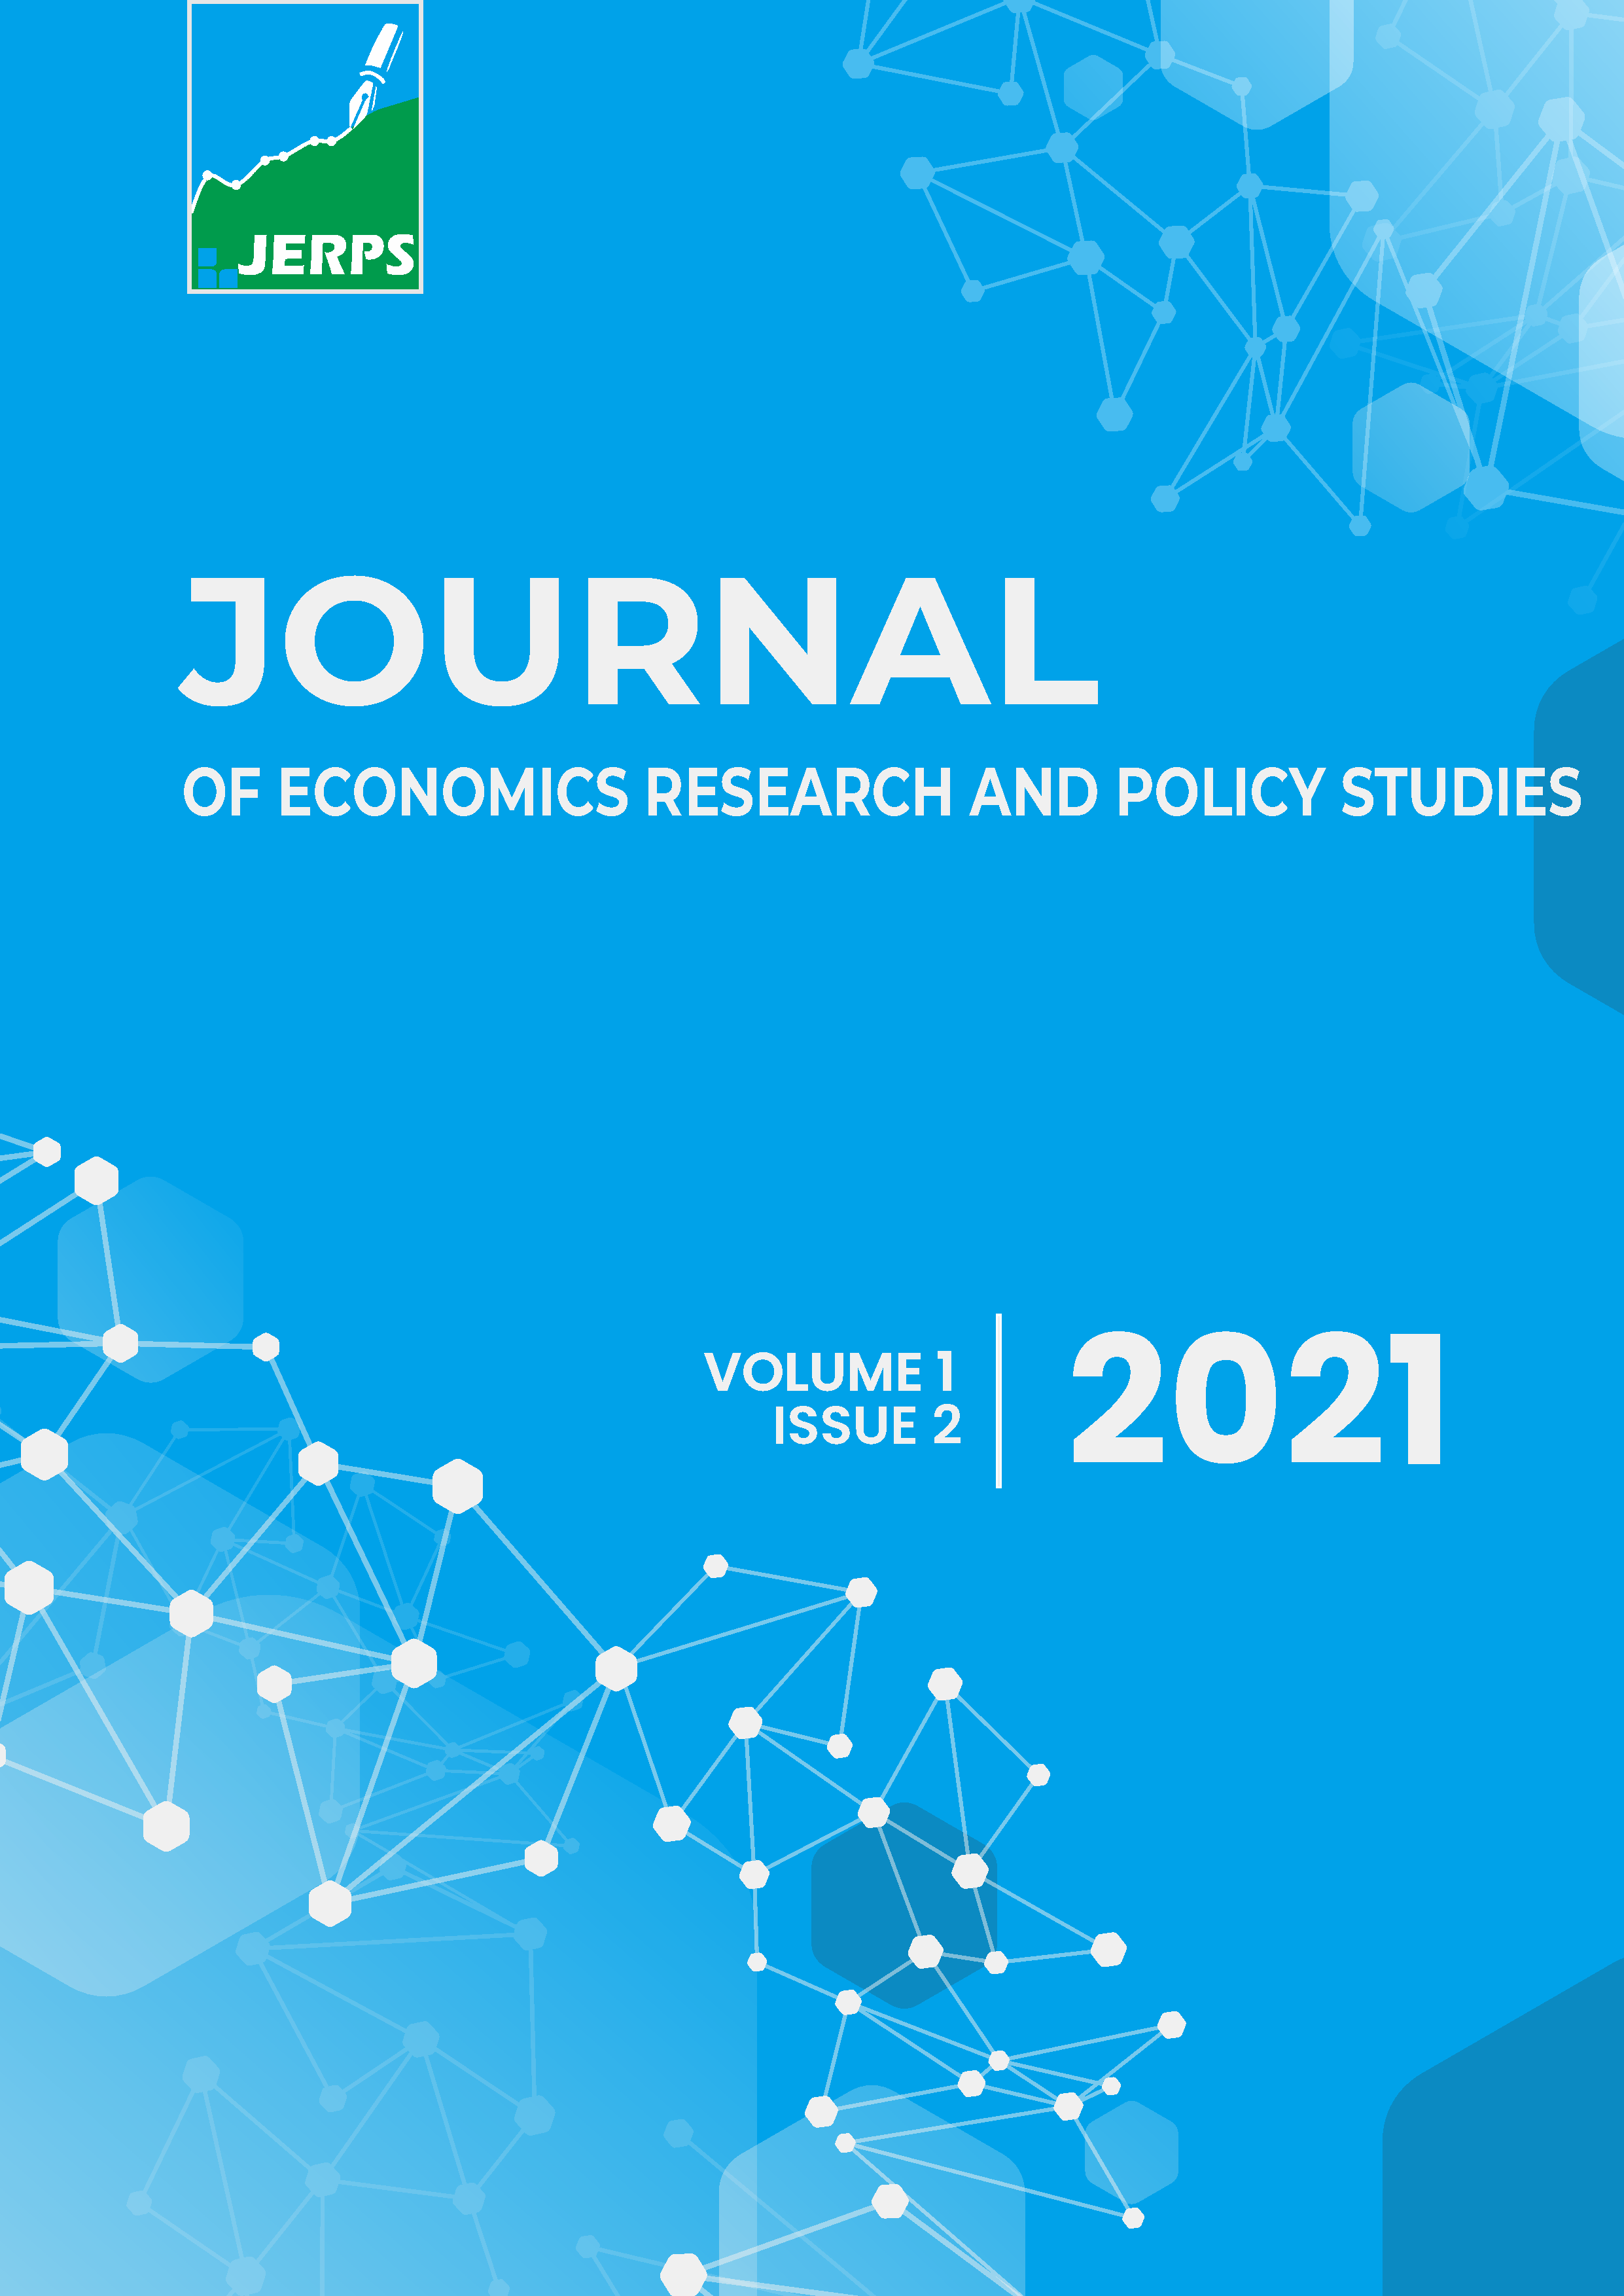 View Vol. 1 No. 2 (2021): Journal of Economics Research and Policy Studies